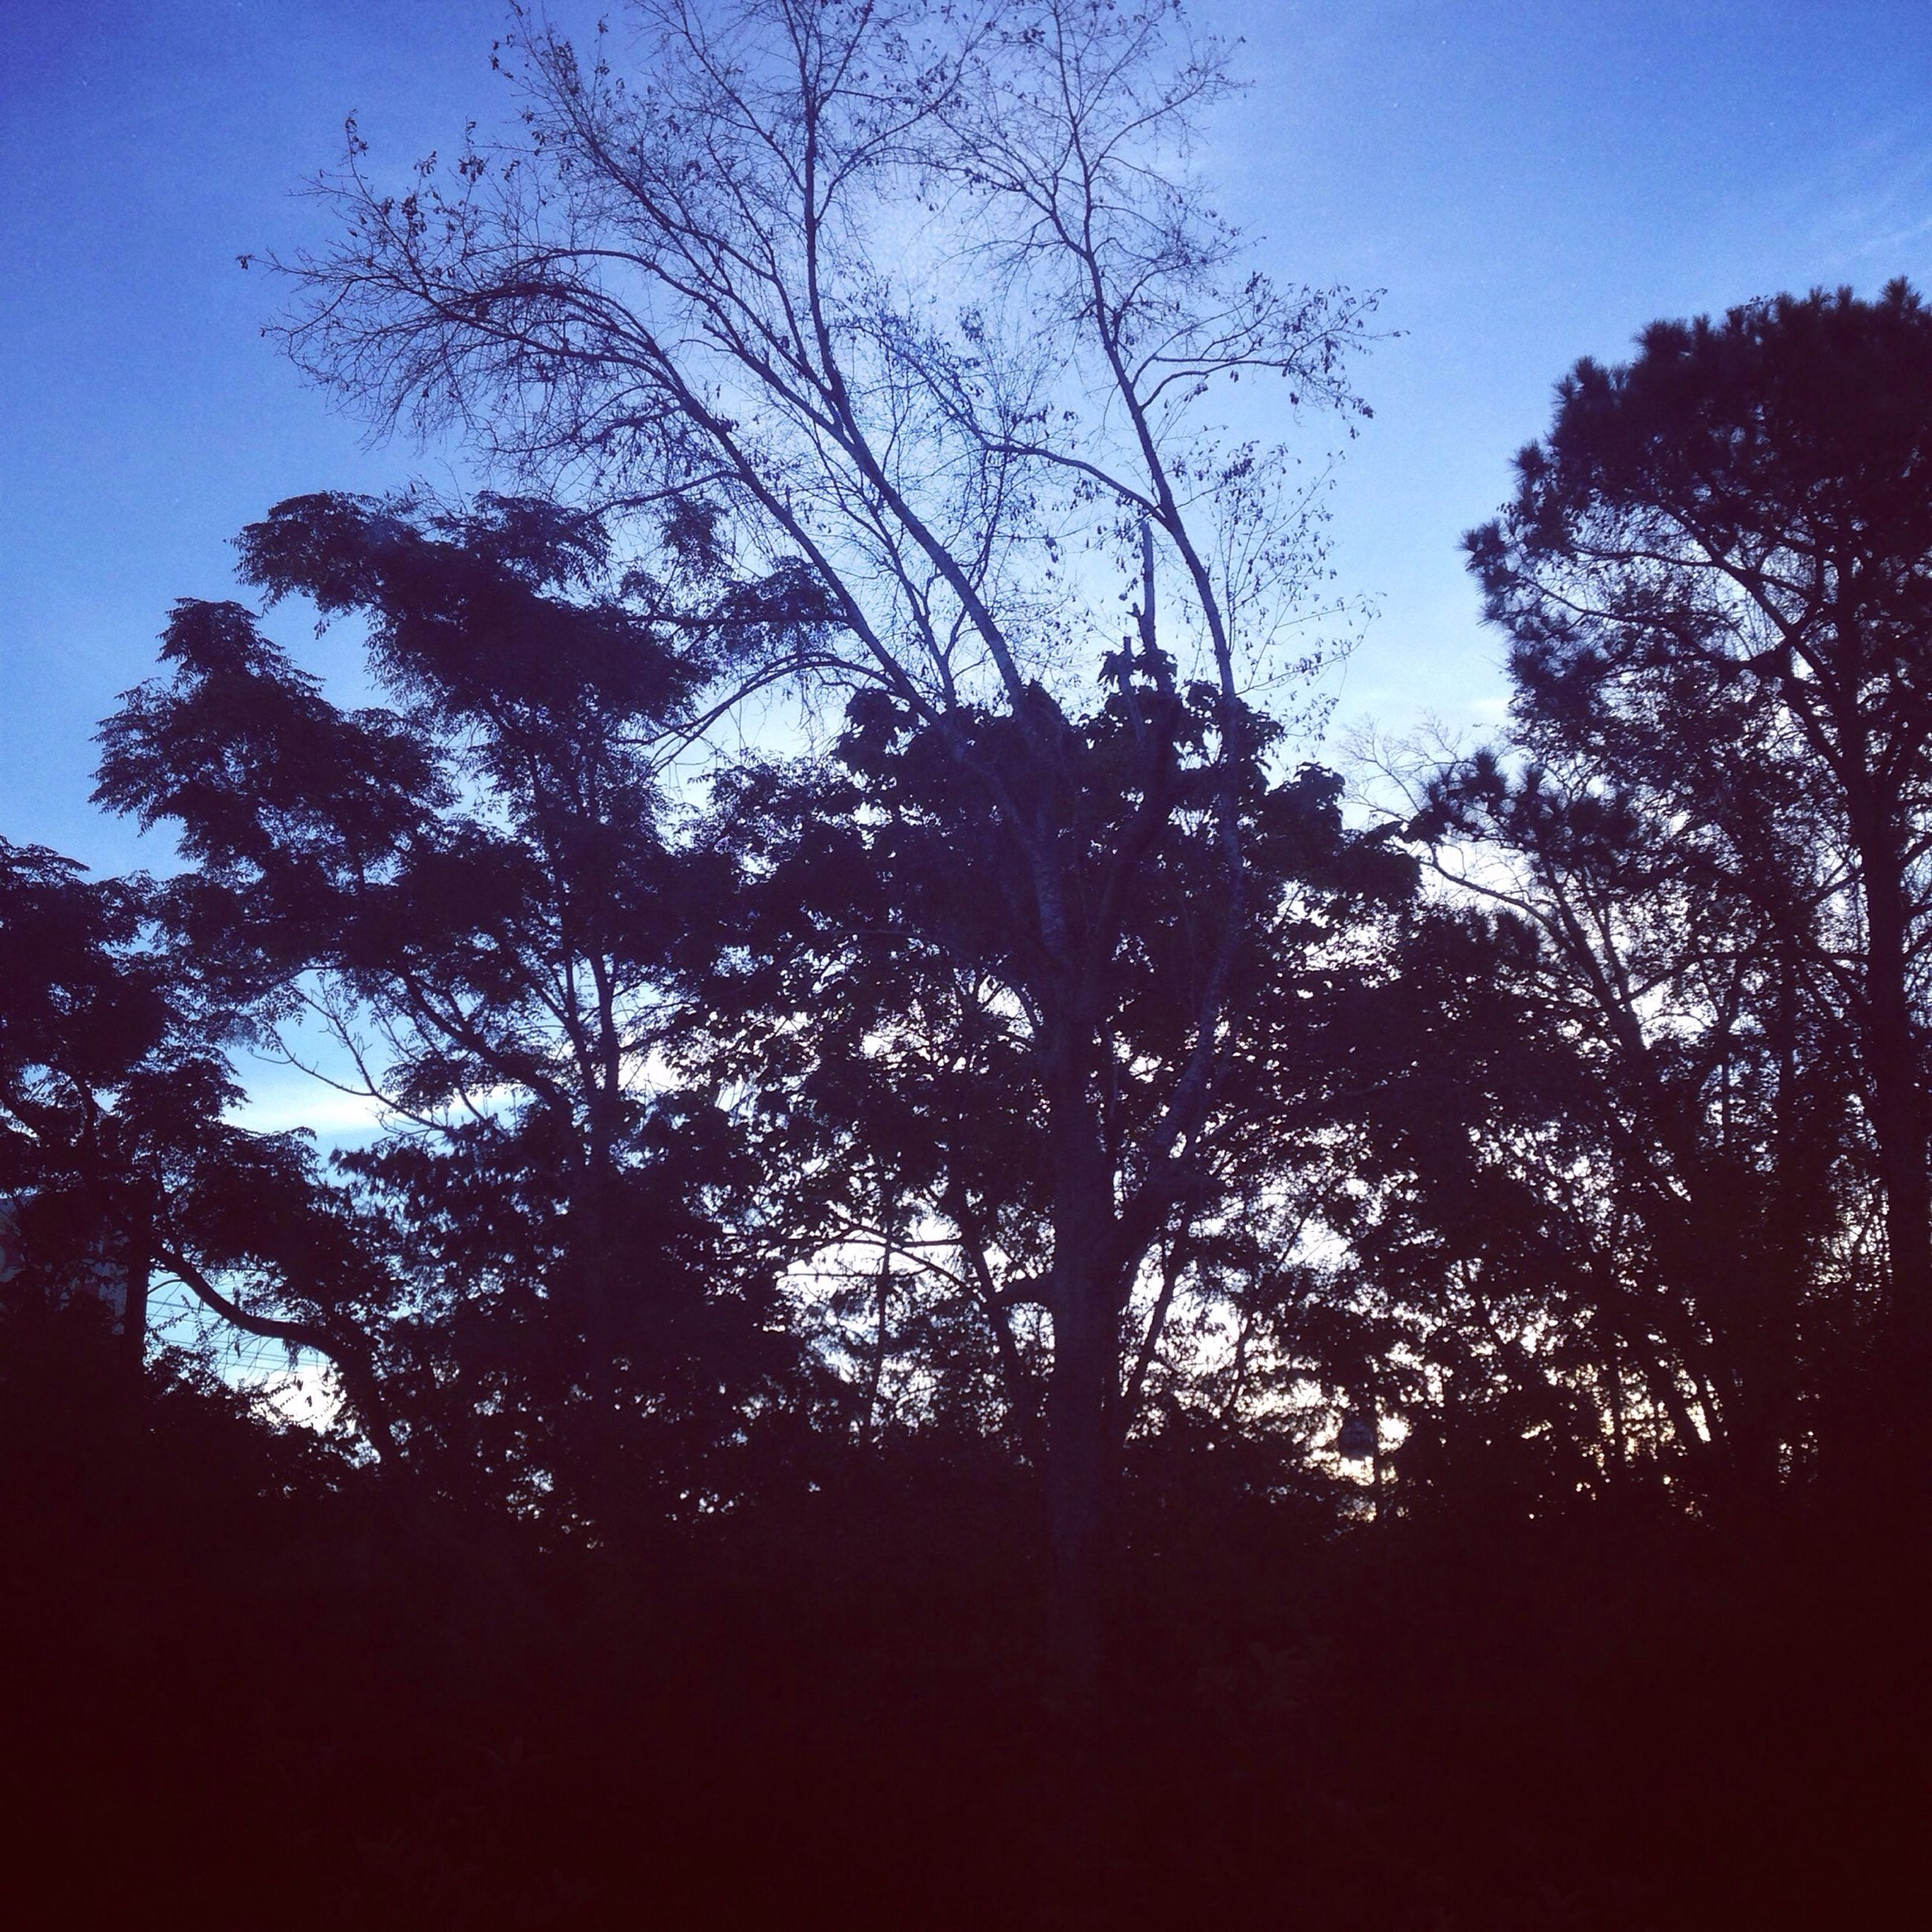 tree, silhouette, branch, tranquility, low angle view, bare tree, growth, beauty in nature, nature, sky, tranquil scene, scenics, clear sky, blue, outdoors, no people, dusk, idyllic, forest, tree trunk